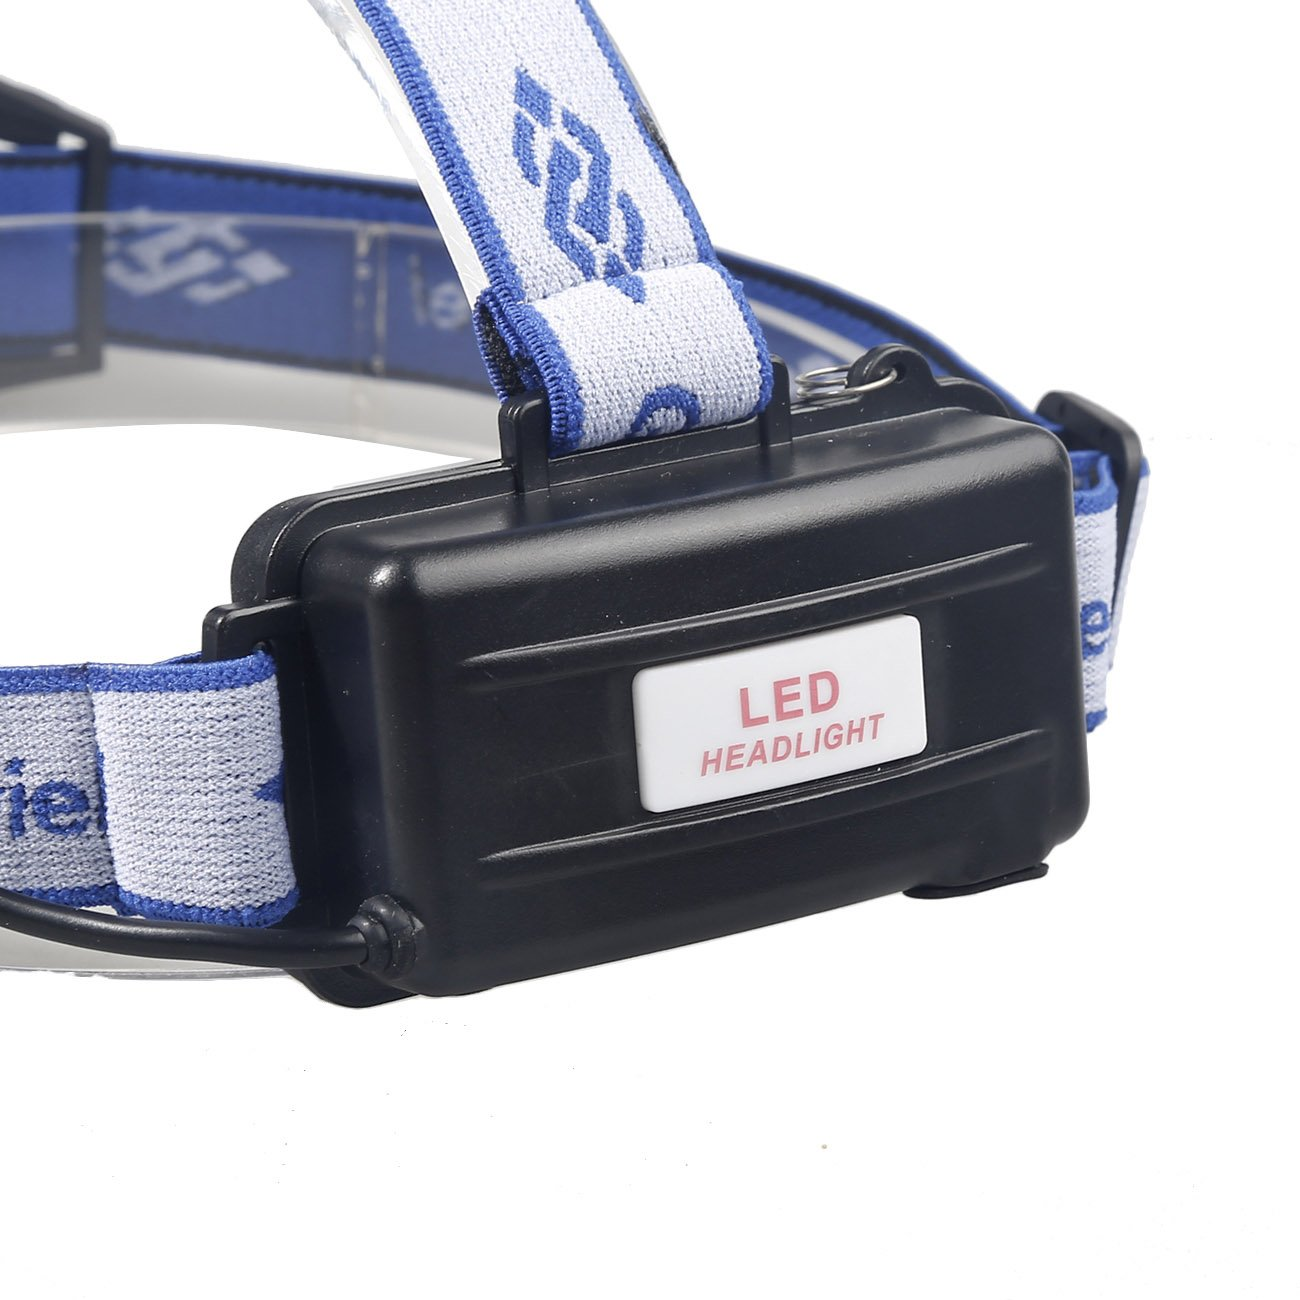 ShineTool Adjustable Rechargeable LED Headlamp 3 Modes, Zoomable and Waterproof Headlamp for Free Work, Hiking, Camping, Climbing, Running and Adventure by ShineTool (Image #4)